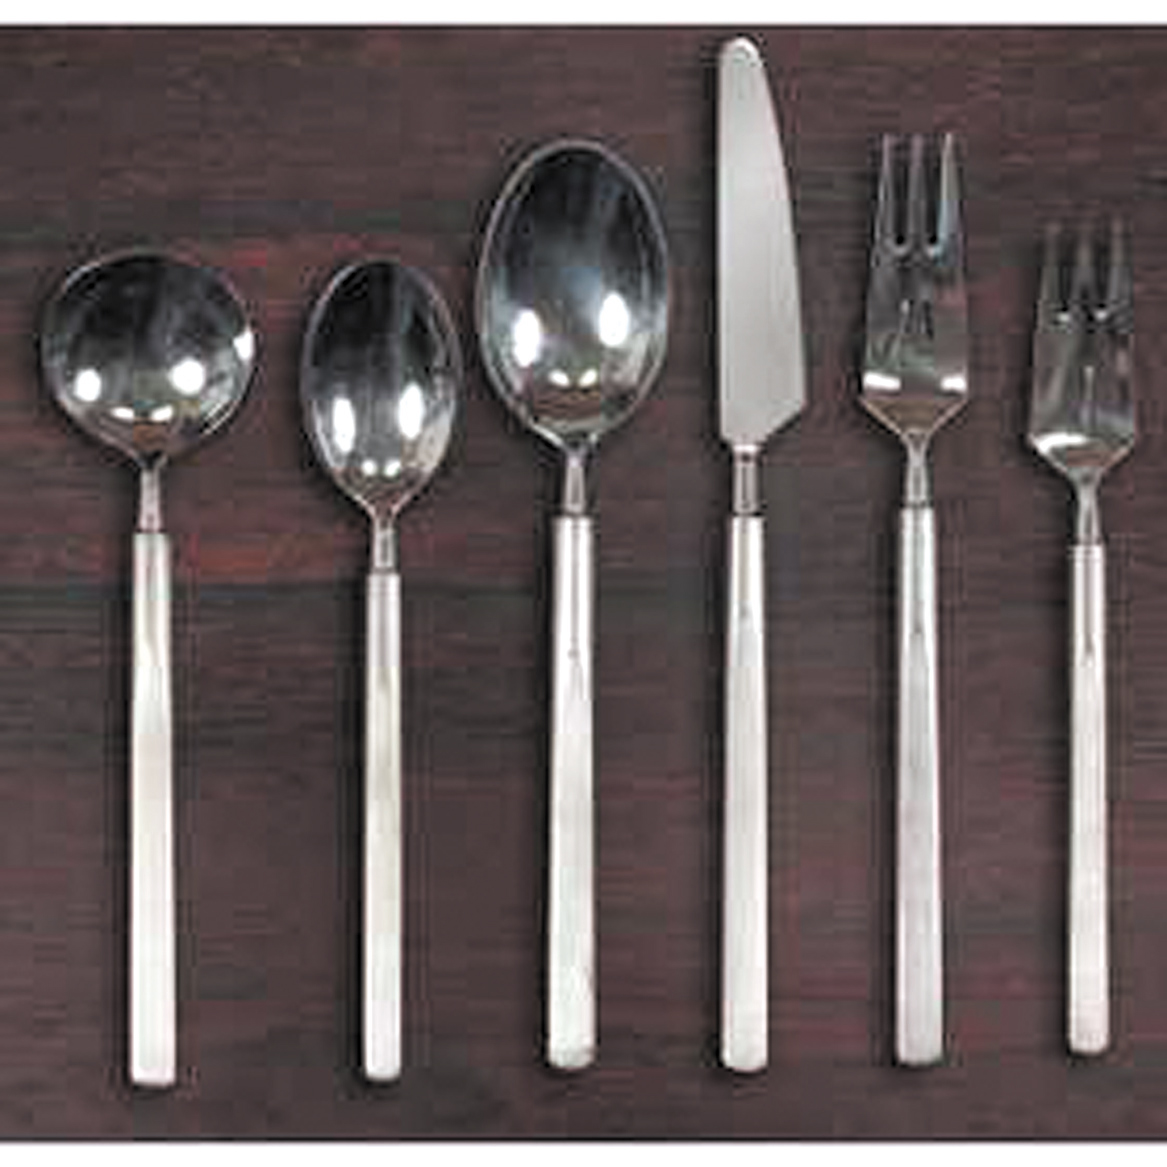 Contemporary Stainless Steel Flatware Antique Detective Modern Design Stainless Steel Flatware